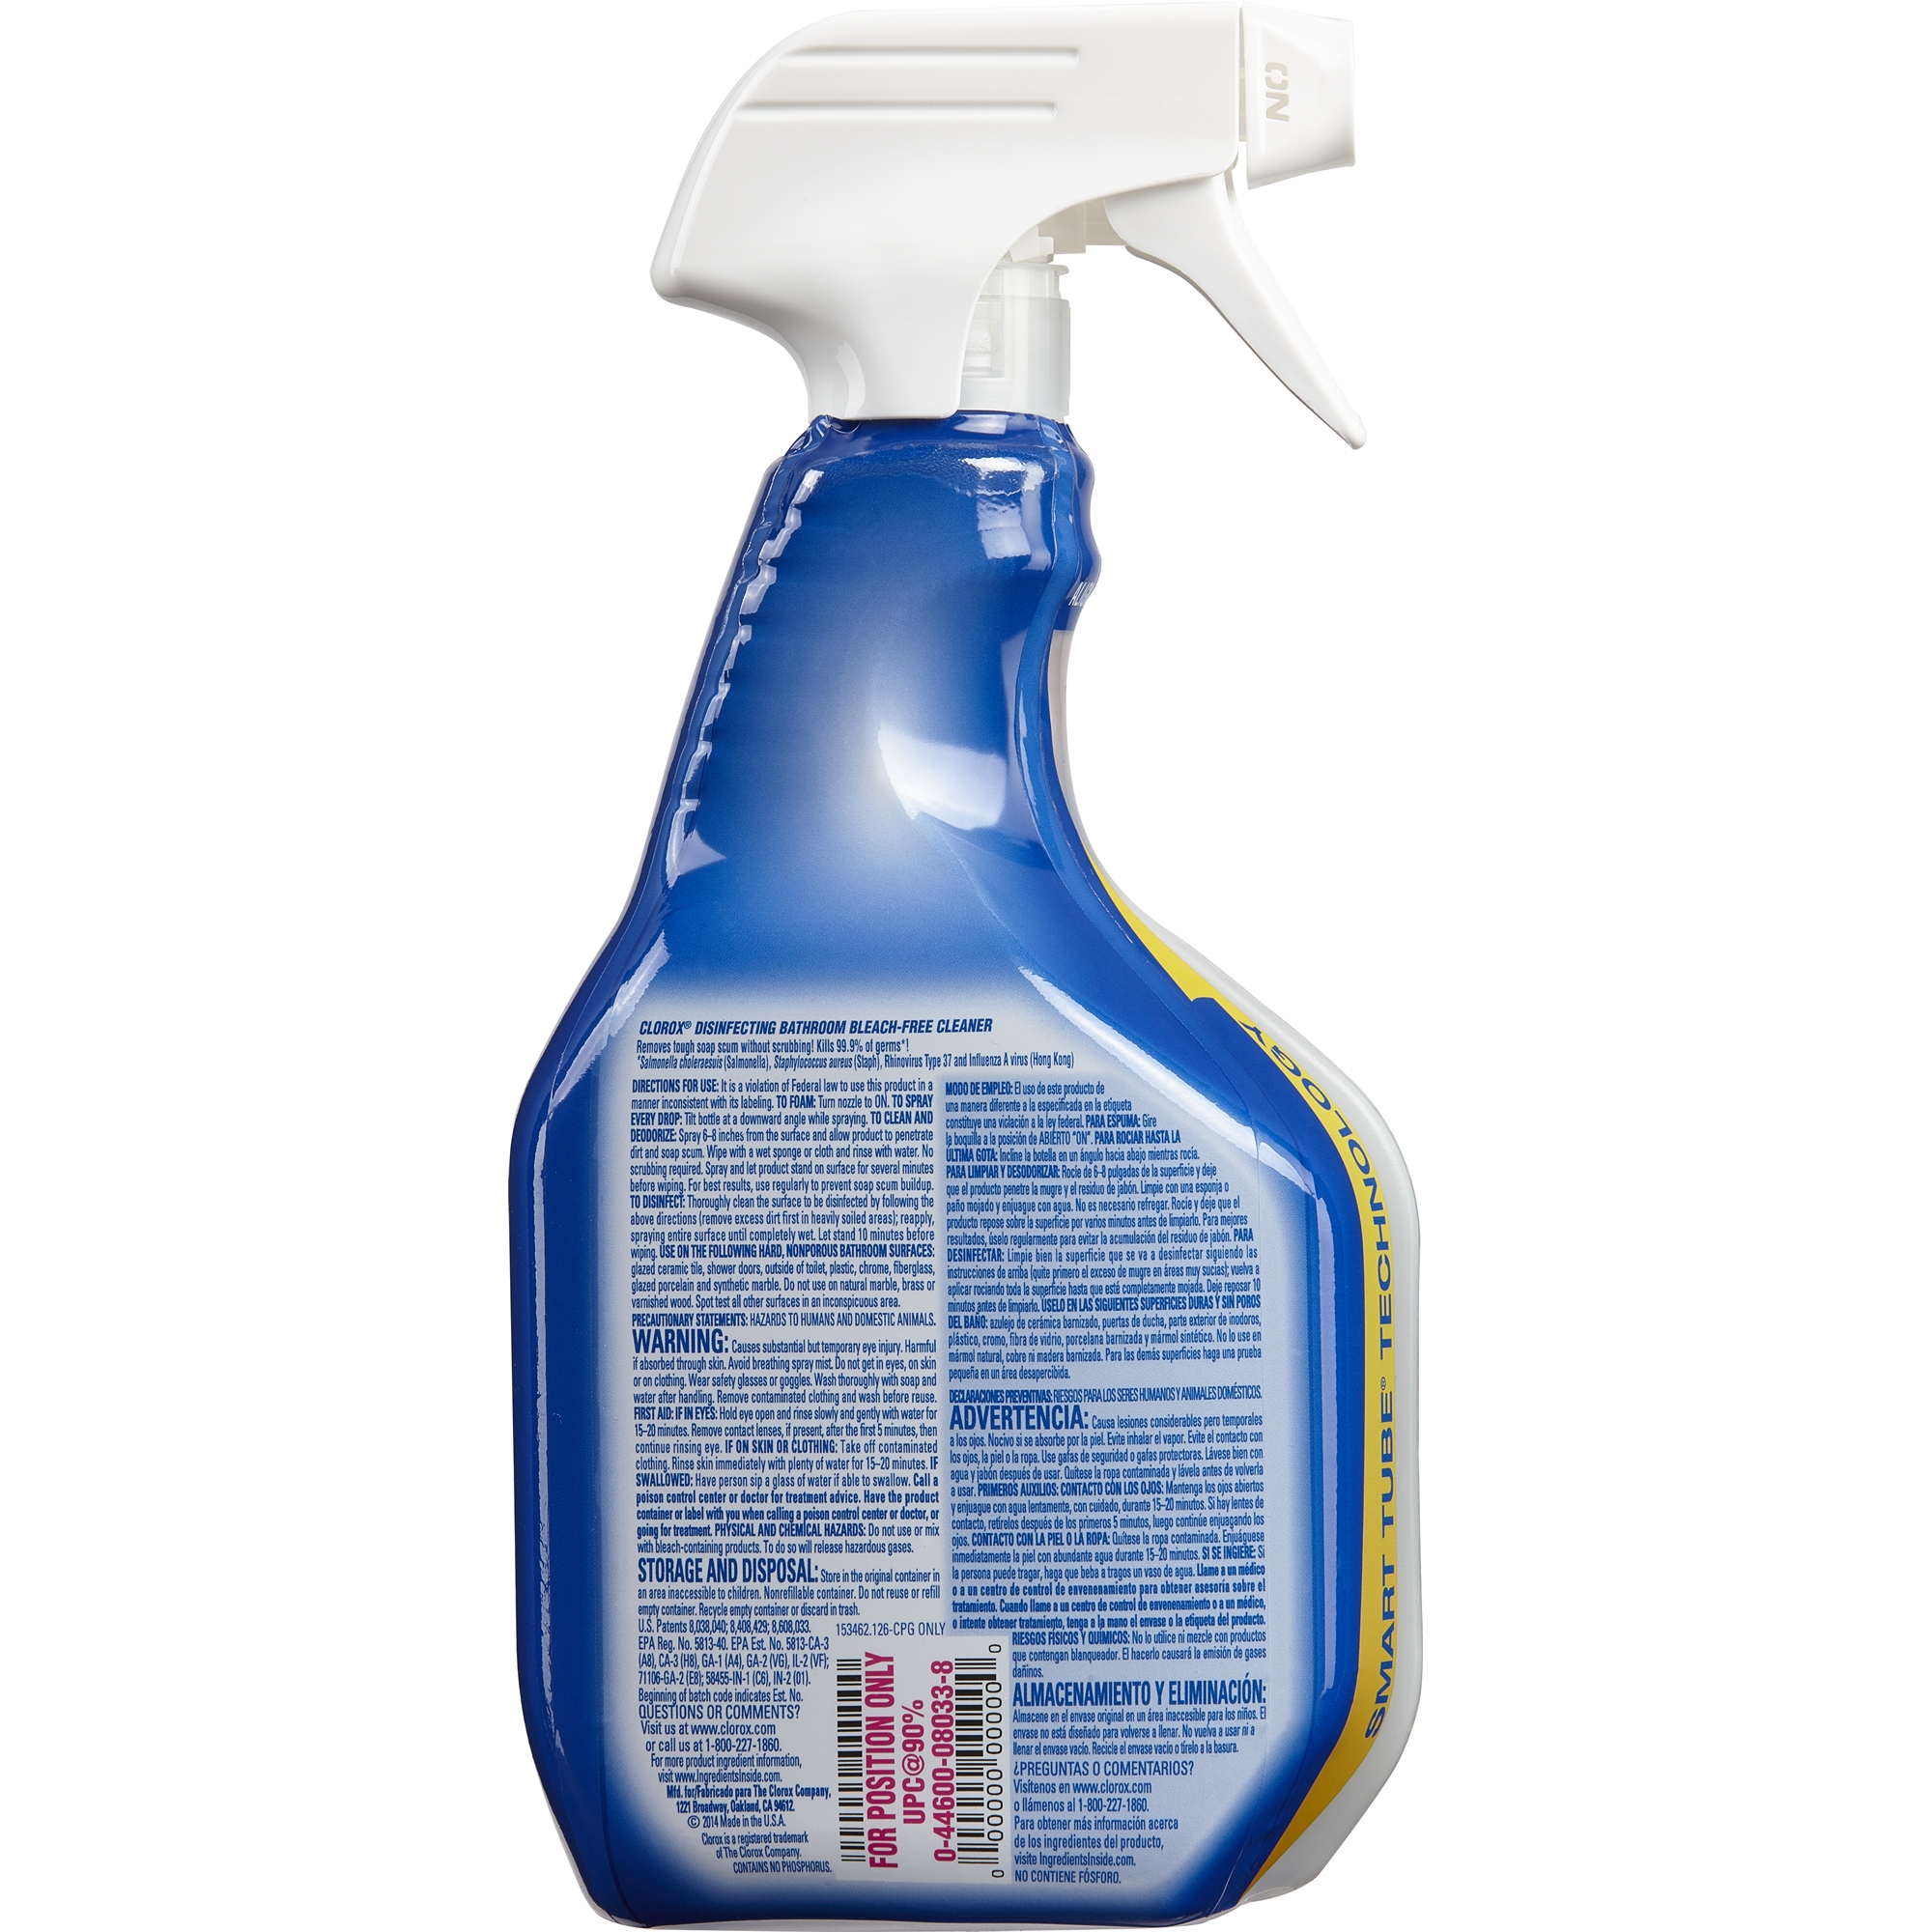 Bathroom cleaner without bleach - Clorox Disinfecting Bathroom Cleaner Spray Bottle 30 Oz Walmart Com